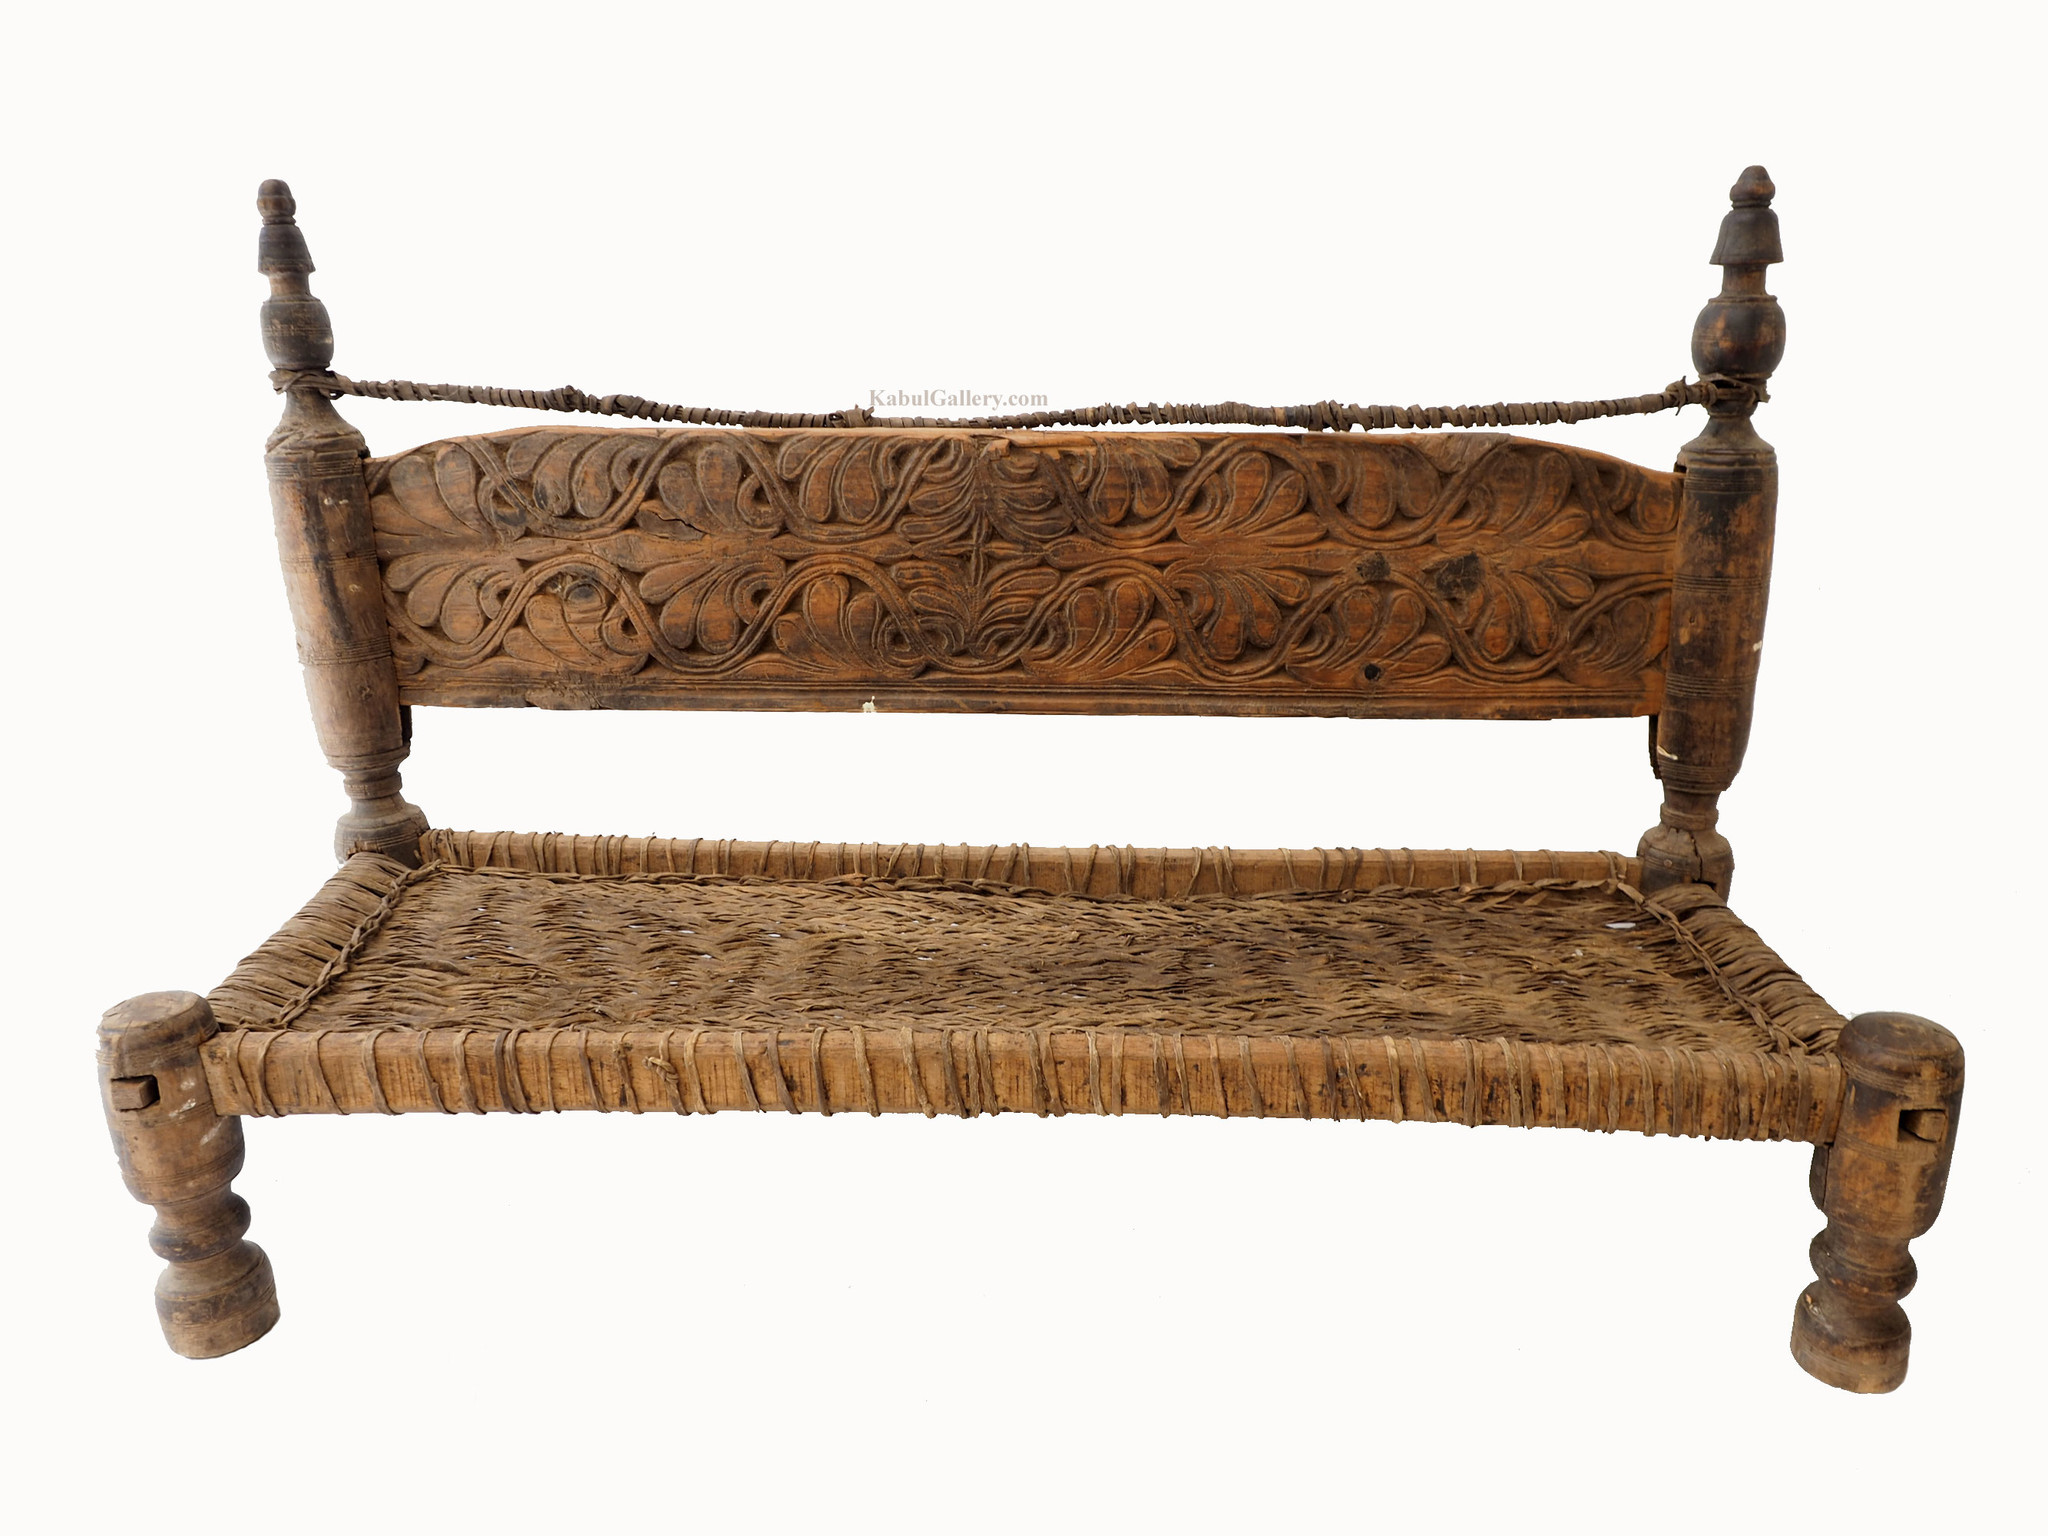 Antique Two Seater Nuristan Chair Stuhl No:19/F